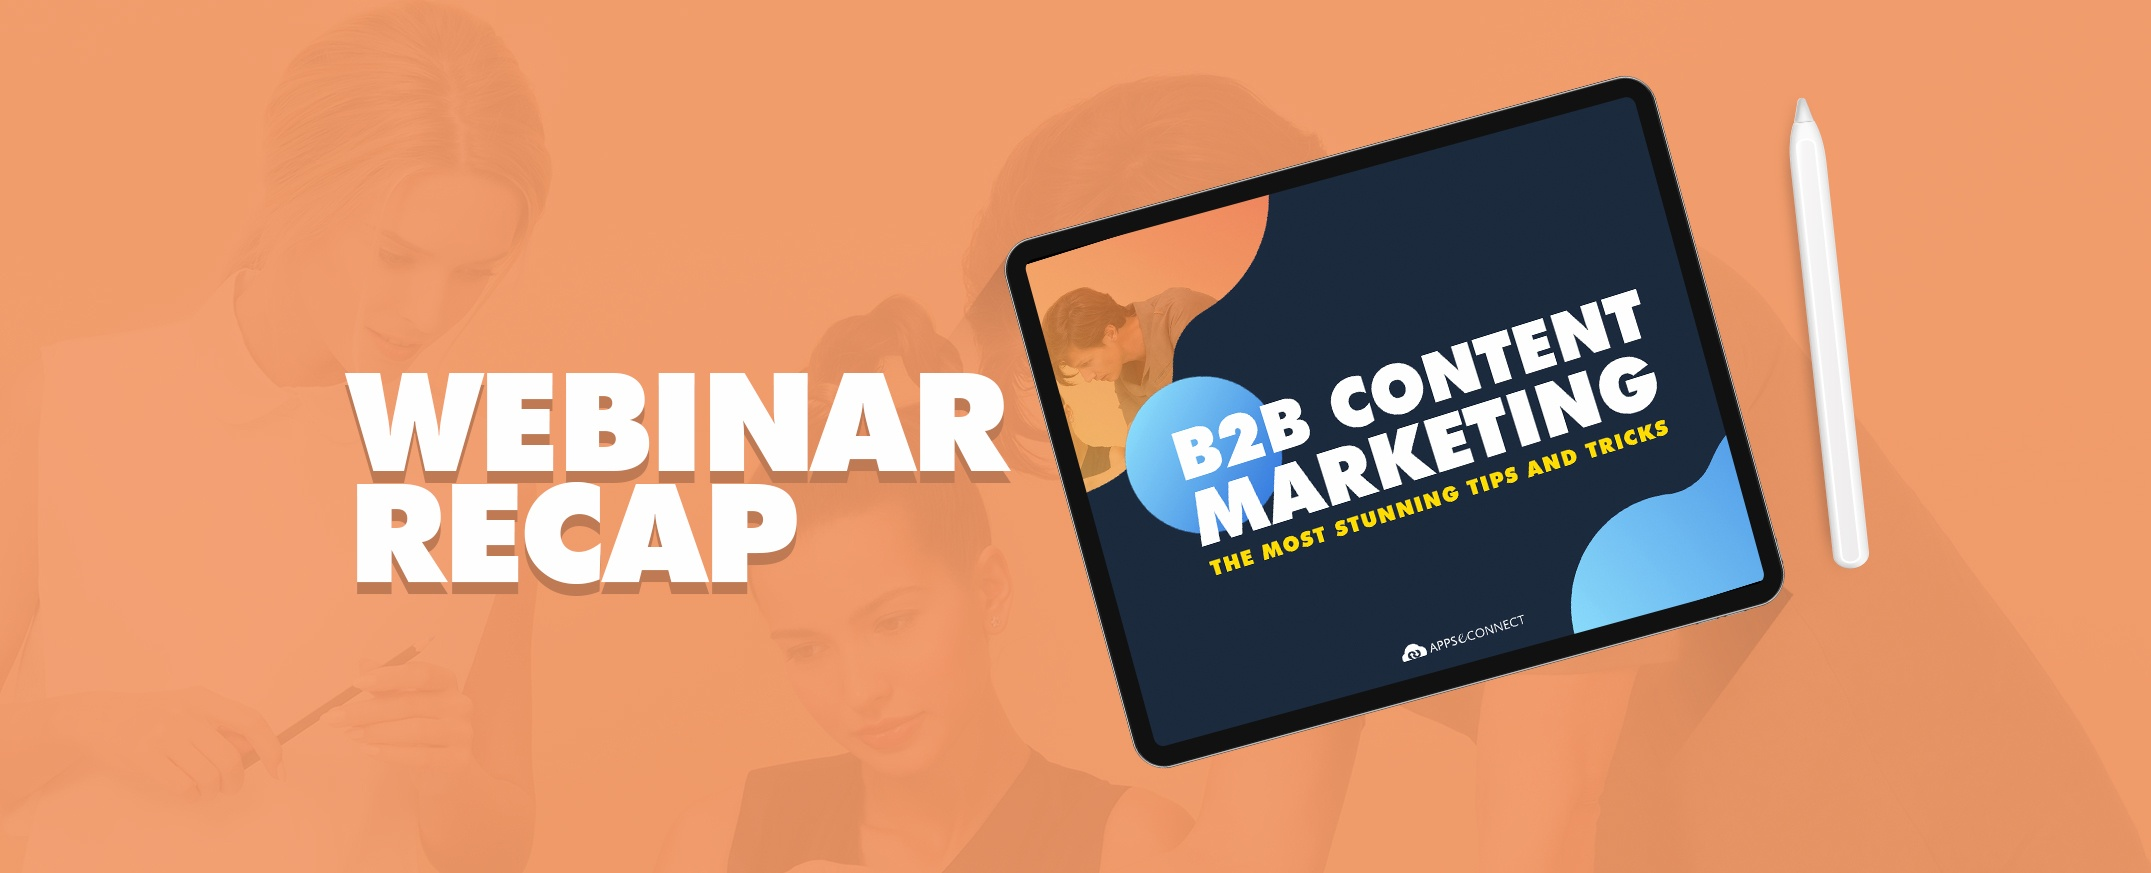 WEBINAR_RECAP_B2B-Content-Marketing---The-Most-Stunning-Tips-and-Tricks